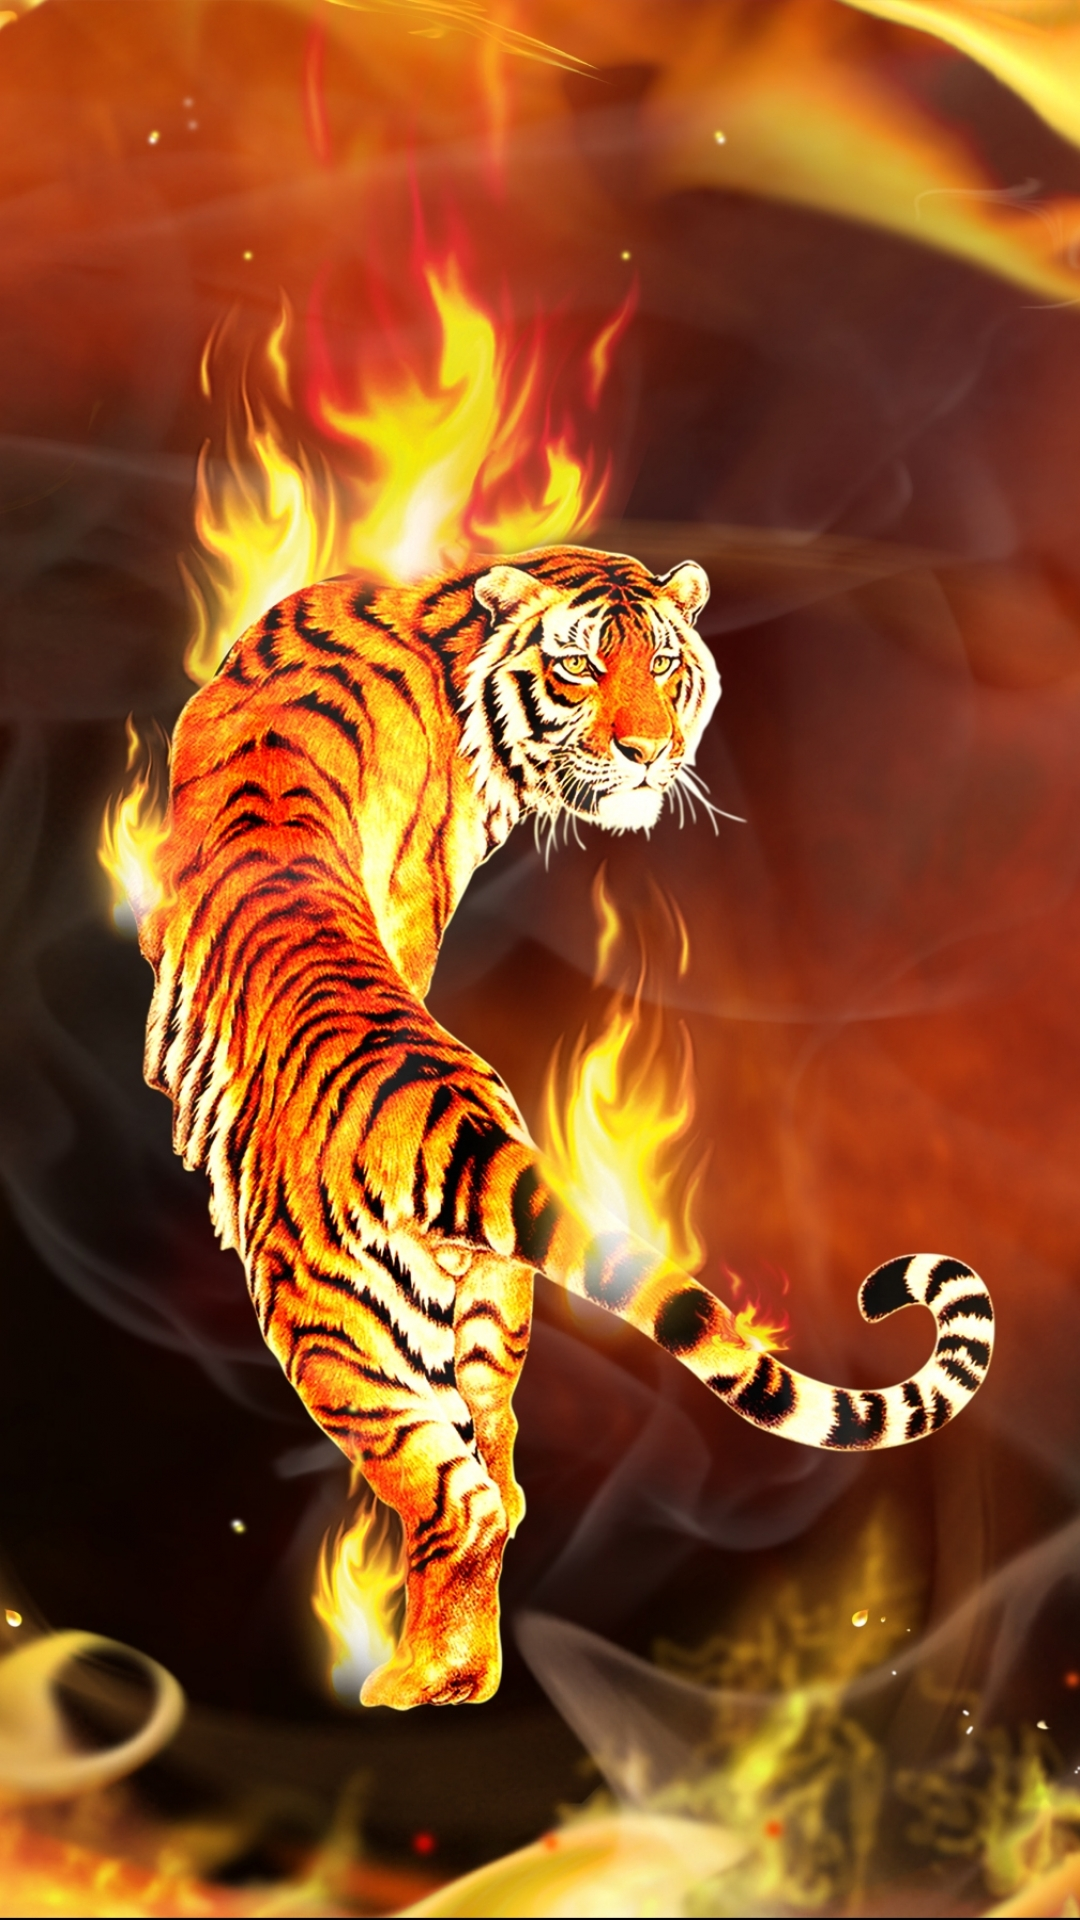 Fantasytiger 1080x1920 wallpaper id 400373 mobile abyss fantasy tiger 1080x1920 mobile wallpaper thecheapjerseys Images